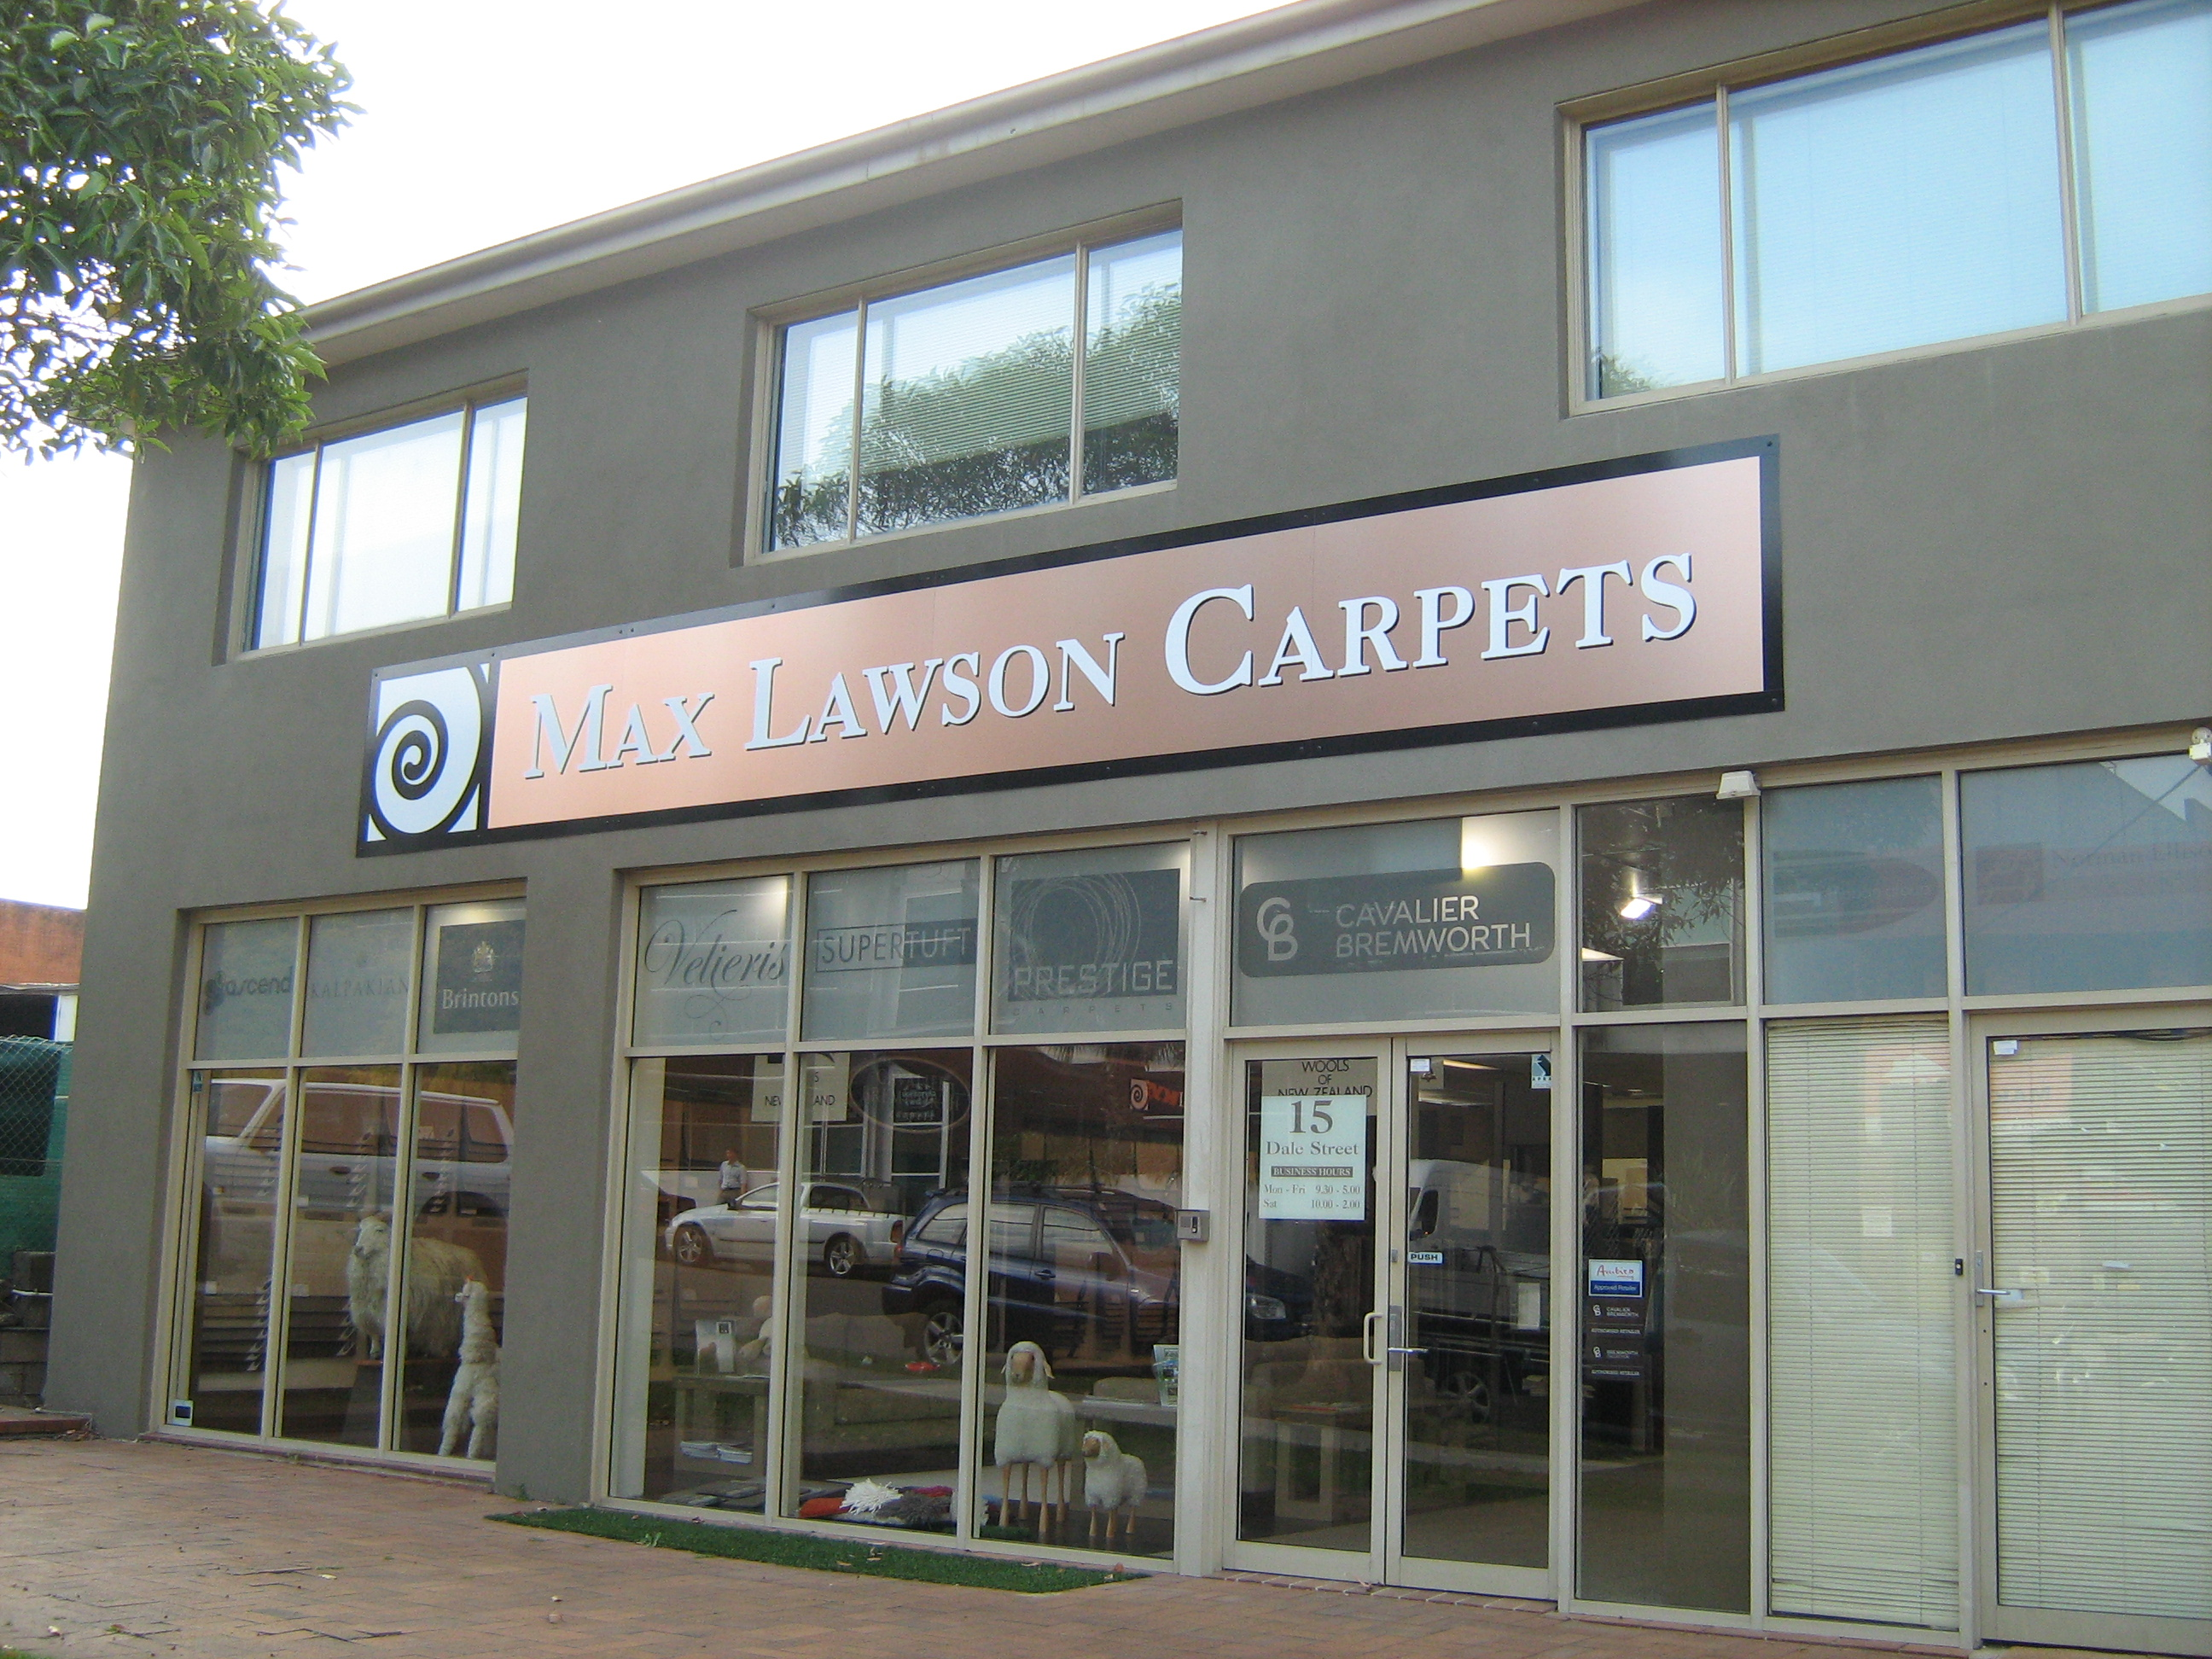 Jmac Graphics, Signage, Outdoor, Building, Awning, Max Lawson Carpets